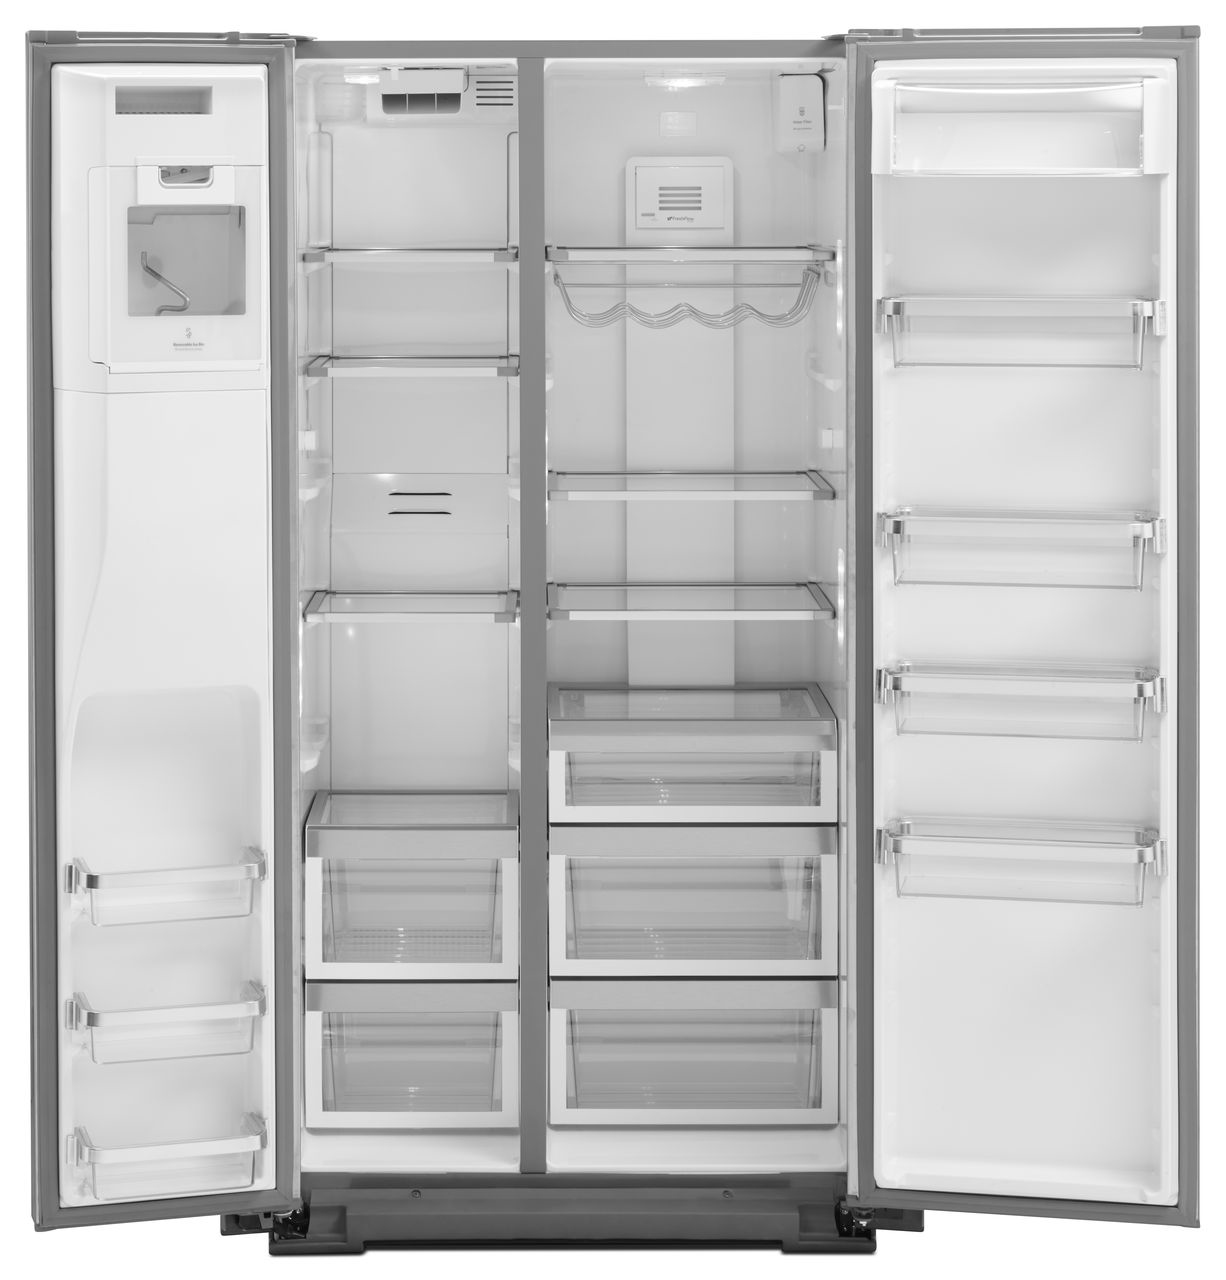 Kitchenaid Refrigerator White kitchenaid sideside refrigerator - krsc503ess